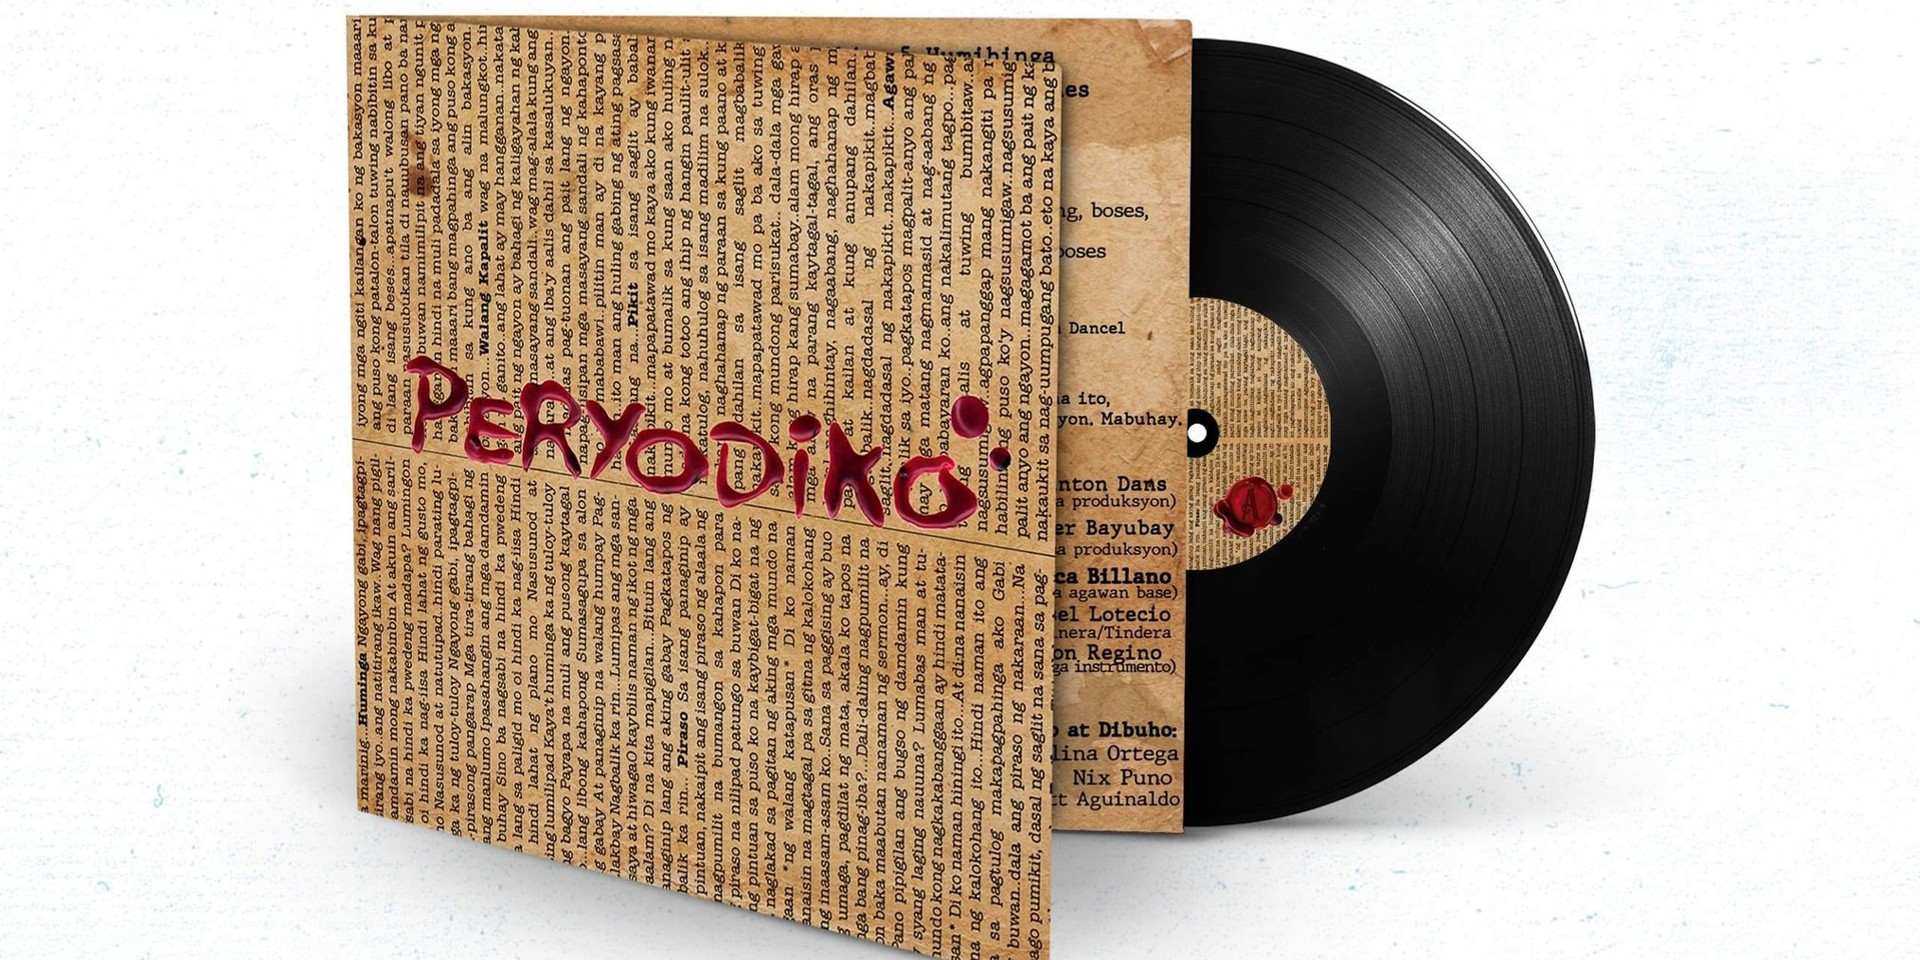 Peryodiko's self-titled debut album is dropping on vinyl for the first time